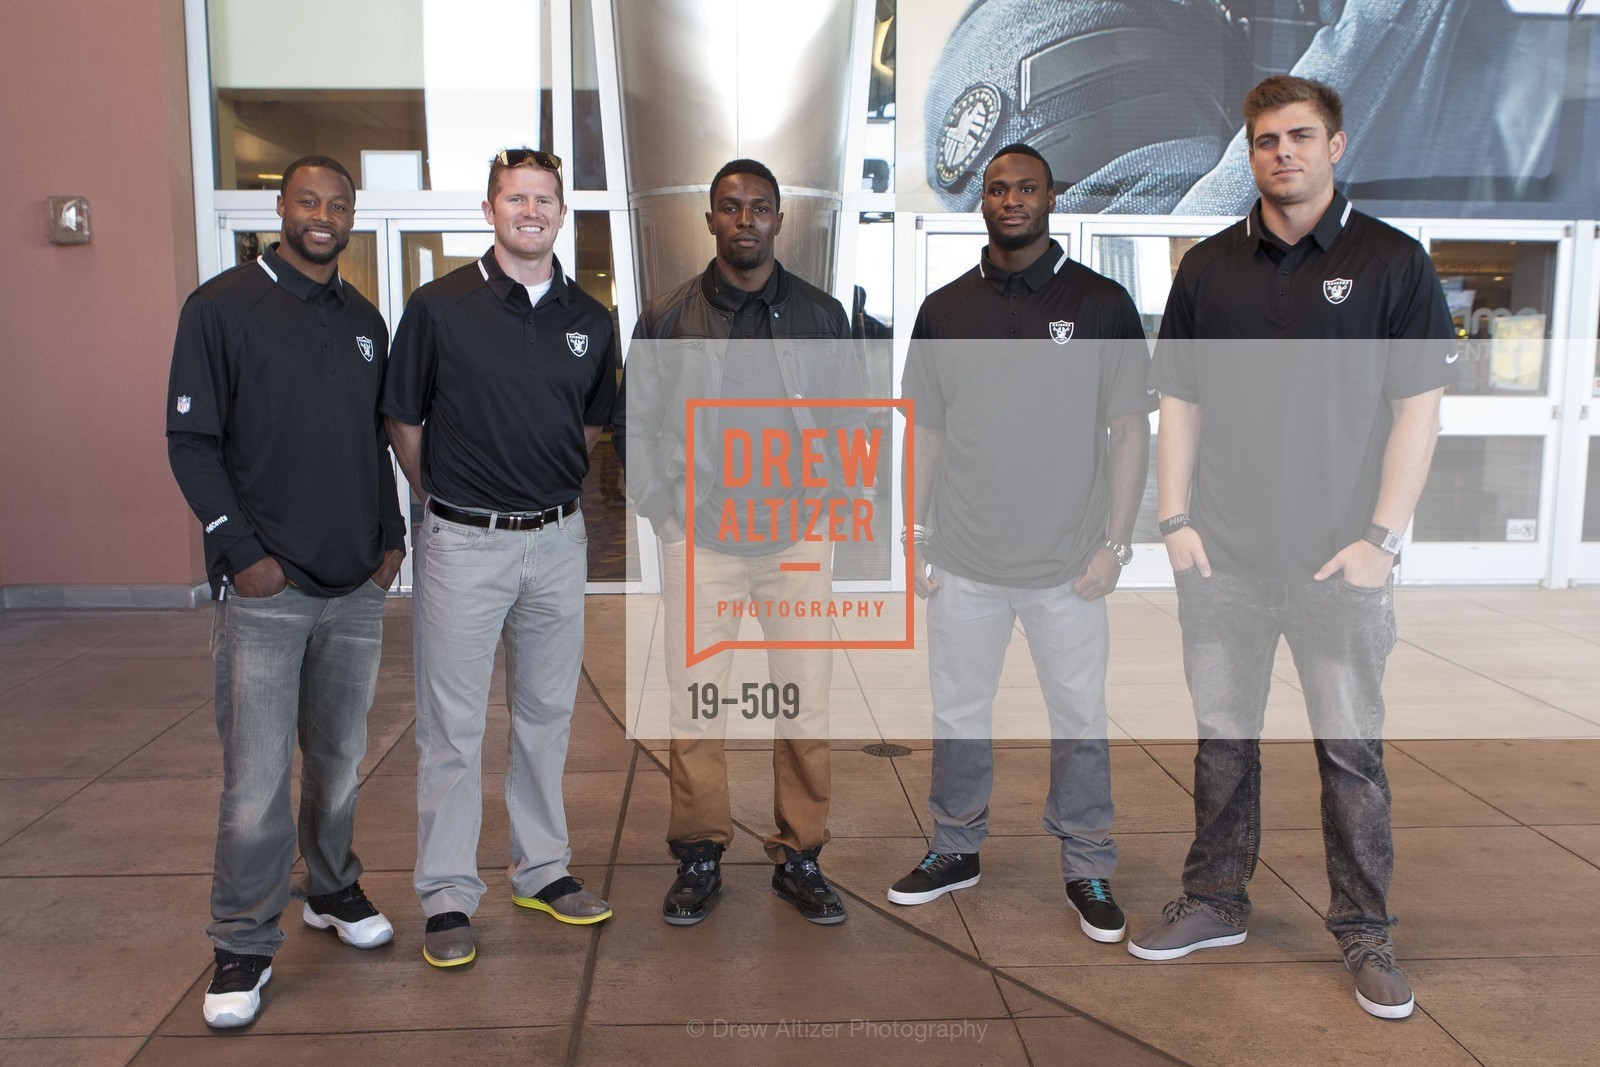 Taiwan Jones, Matthew McGloin, Chimdi Chekwa, Latavius Murray, Nick Kasa, SUMMIT ENTERTAINMENT Presents a Special Screening of DRAFT DAY with the Oakland Raiders, US. AMC 16 Shellmound, Emeryville, Ca, April 9th, 2014,Drew Altizer, Drew Altizer Photography, full-service agency, private events, San Francisco photographer, photographer california